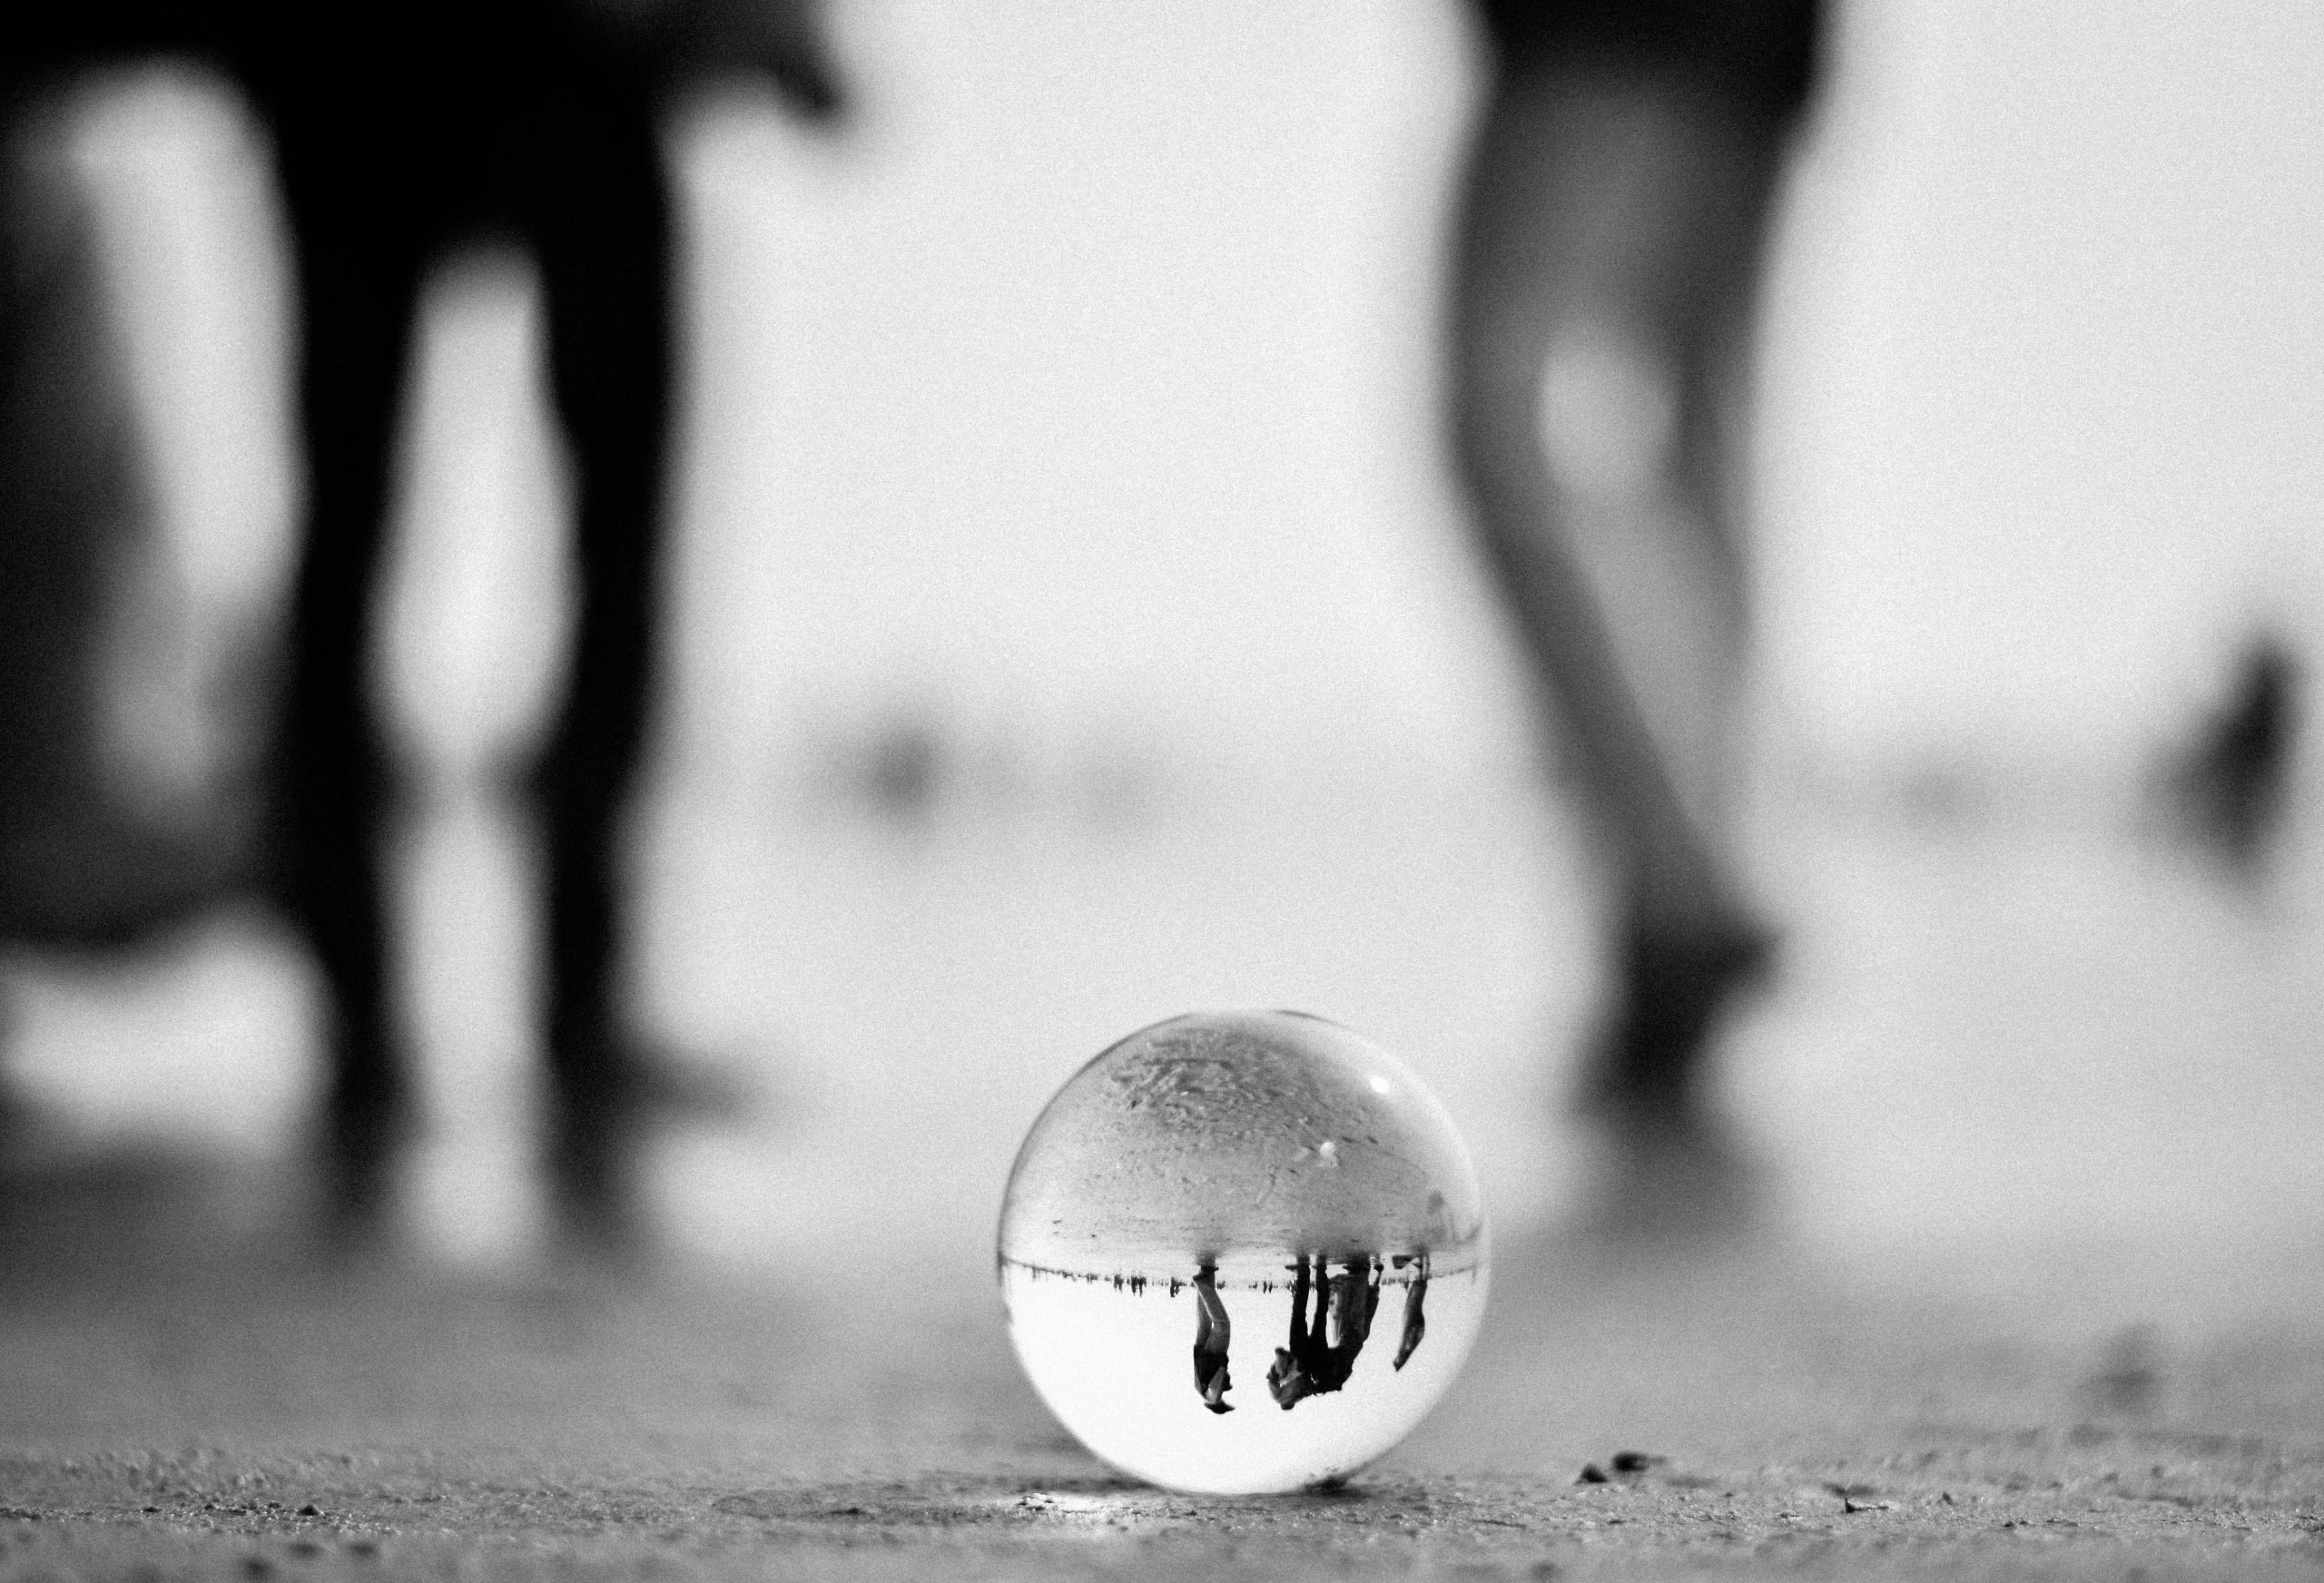 Creative reflection in ball